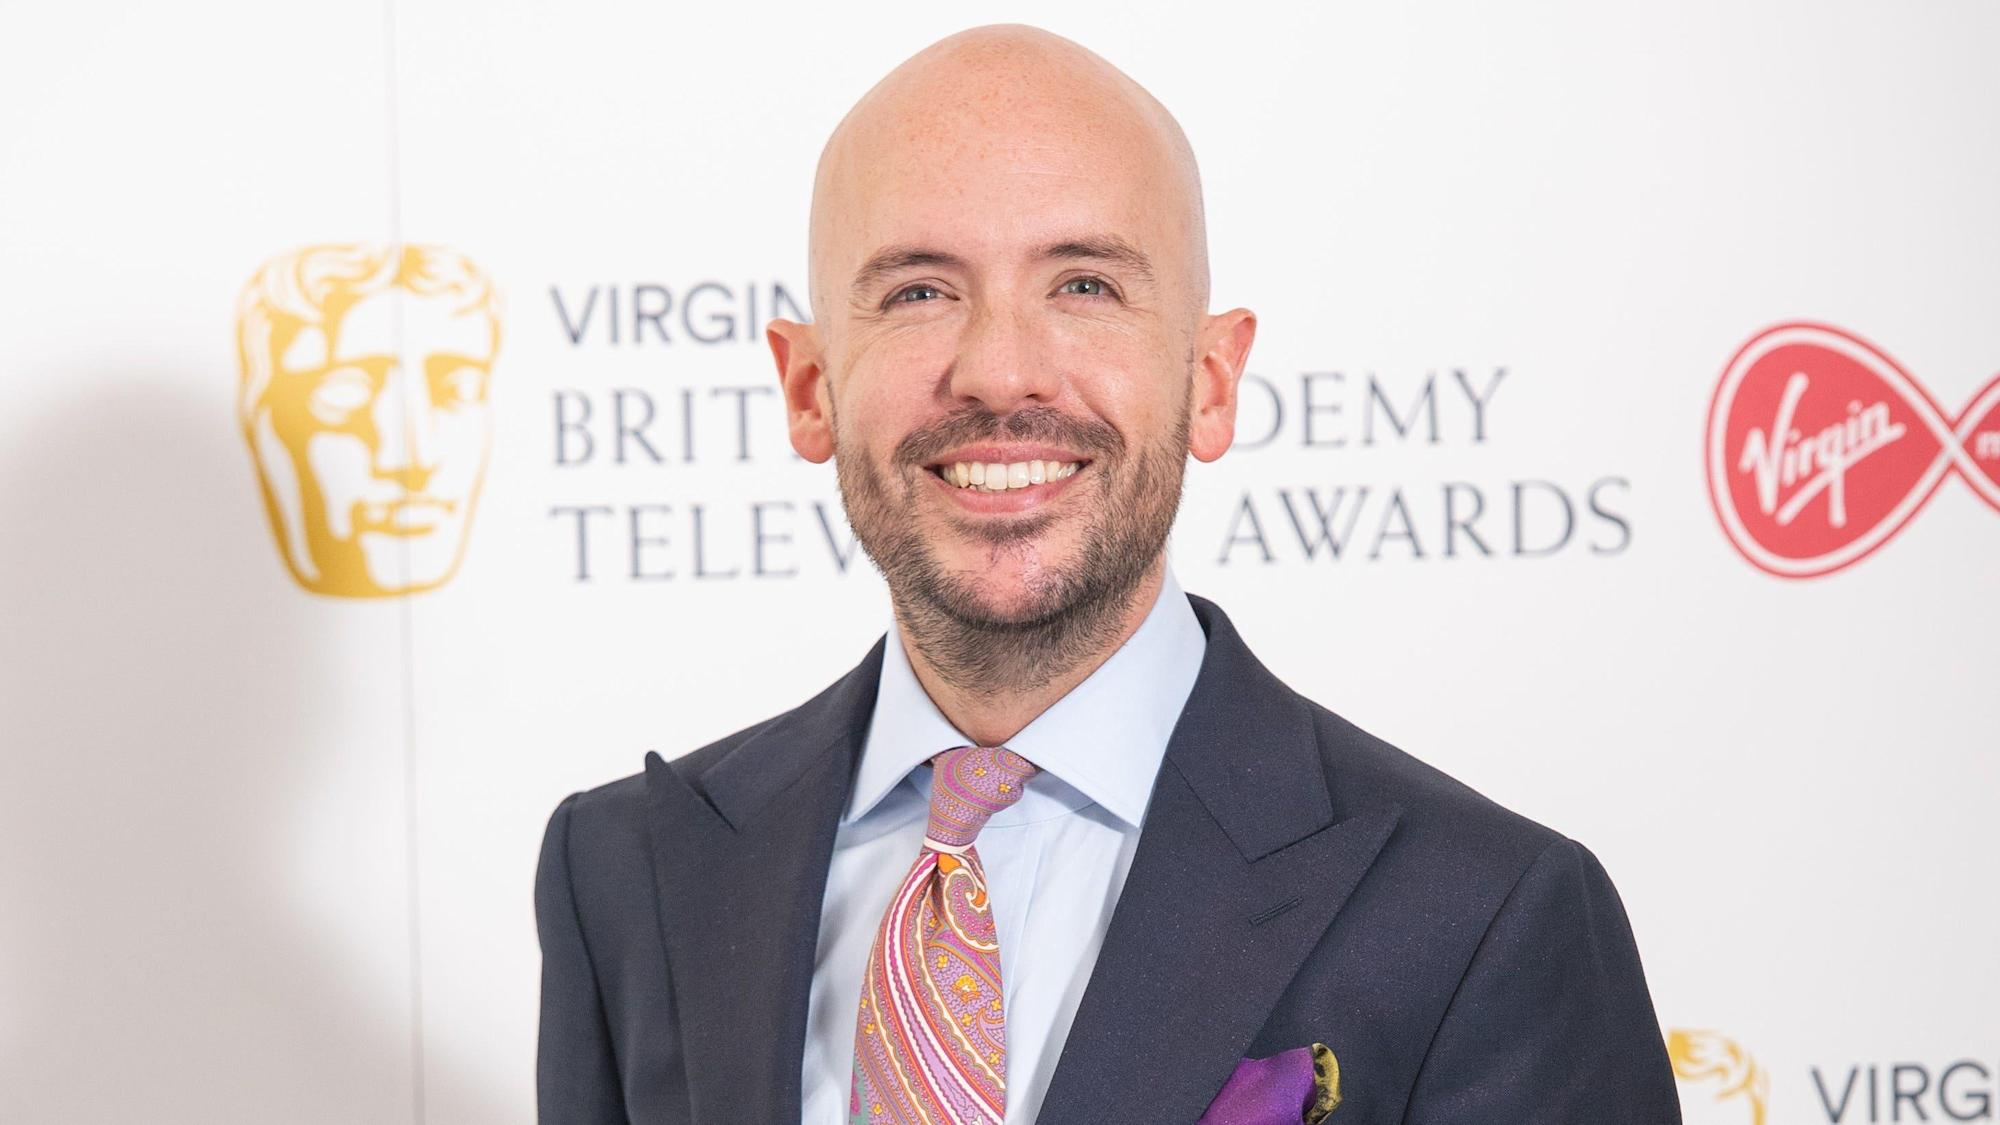 Tom Allen: Lockdown has made people more interested in artisanal skills